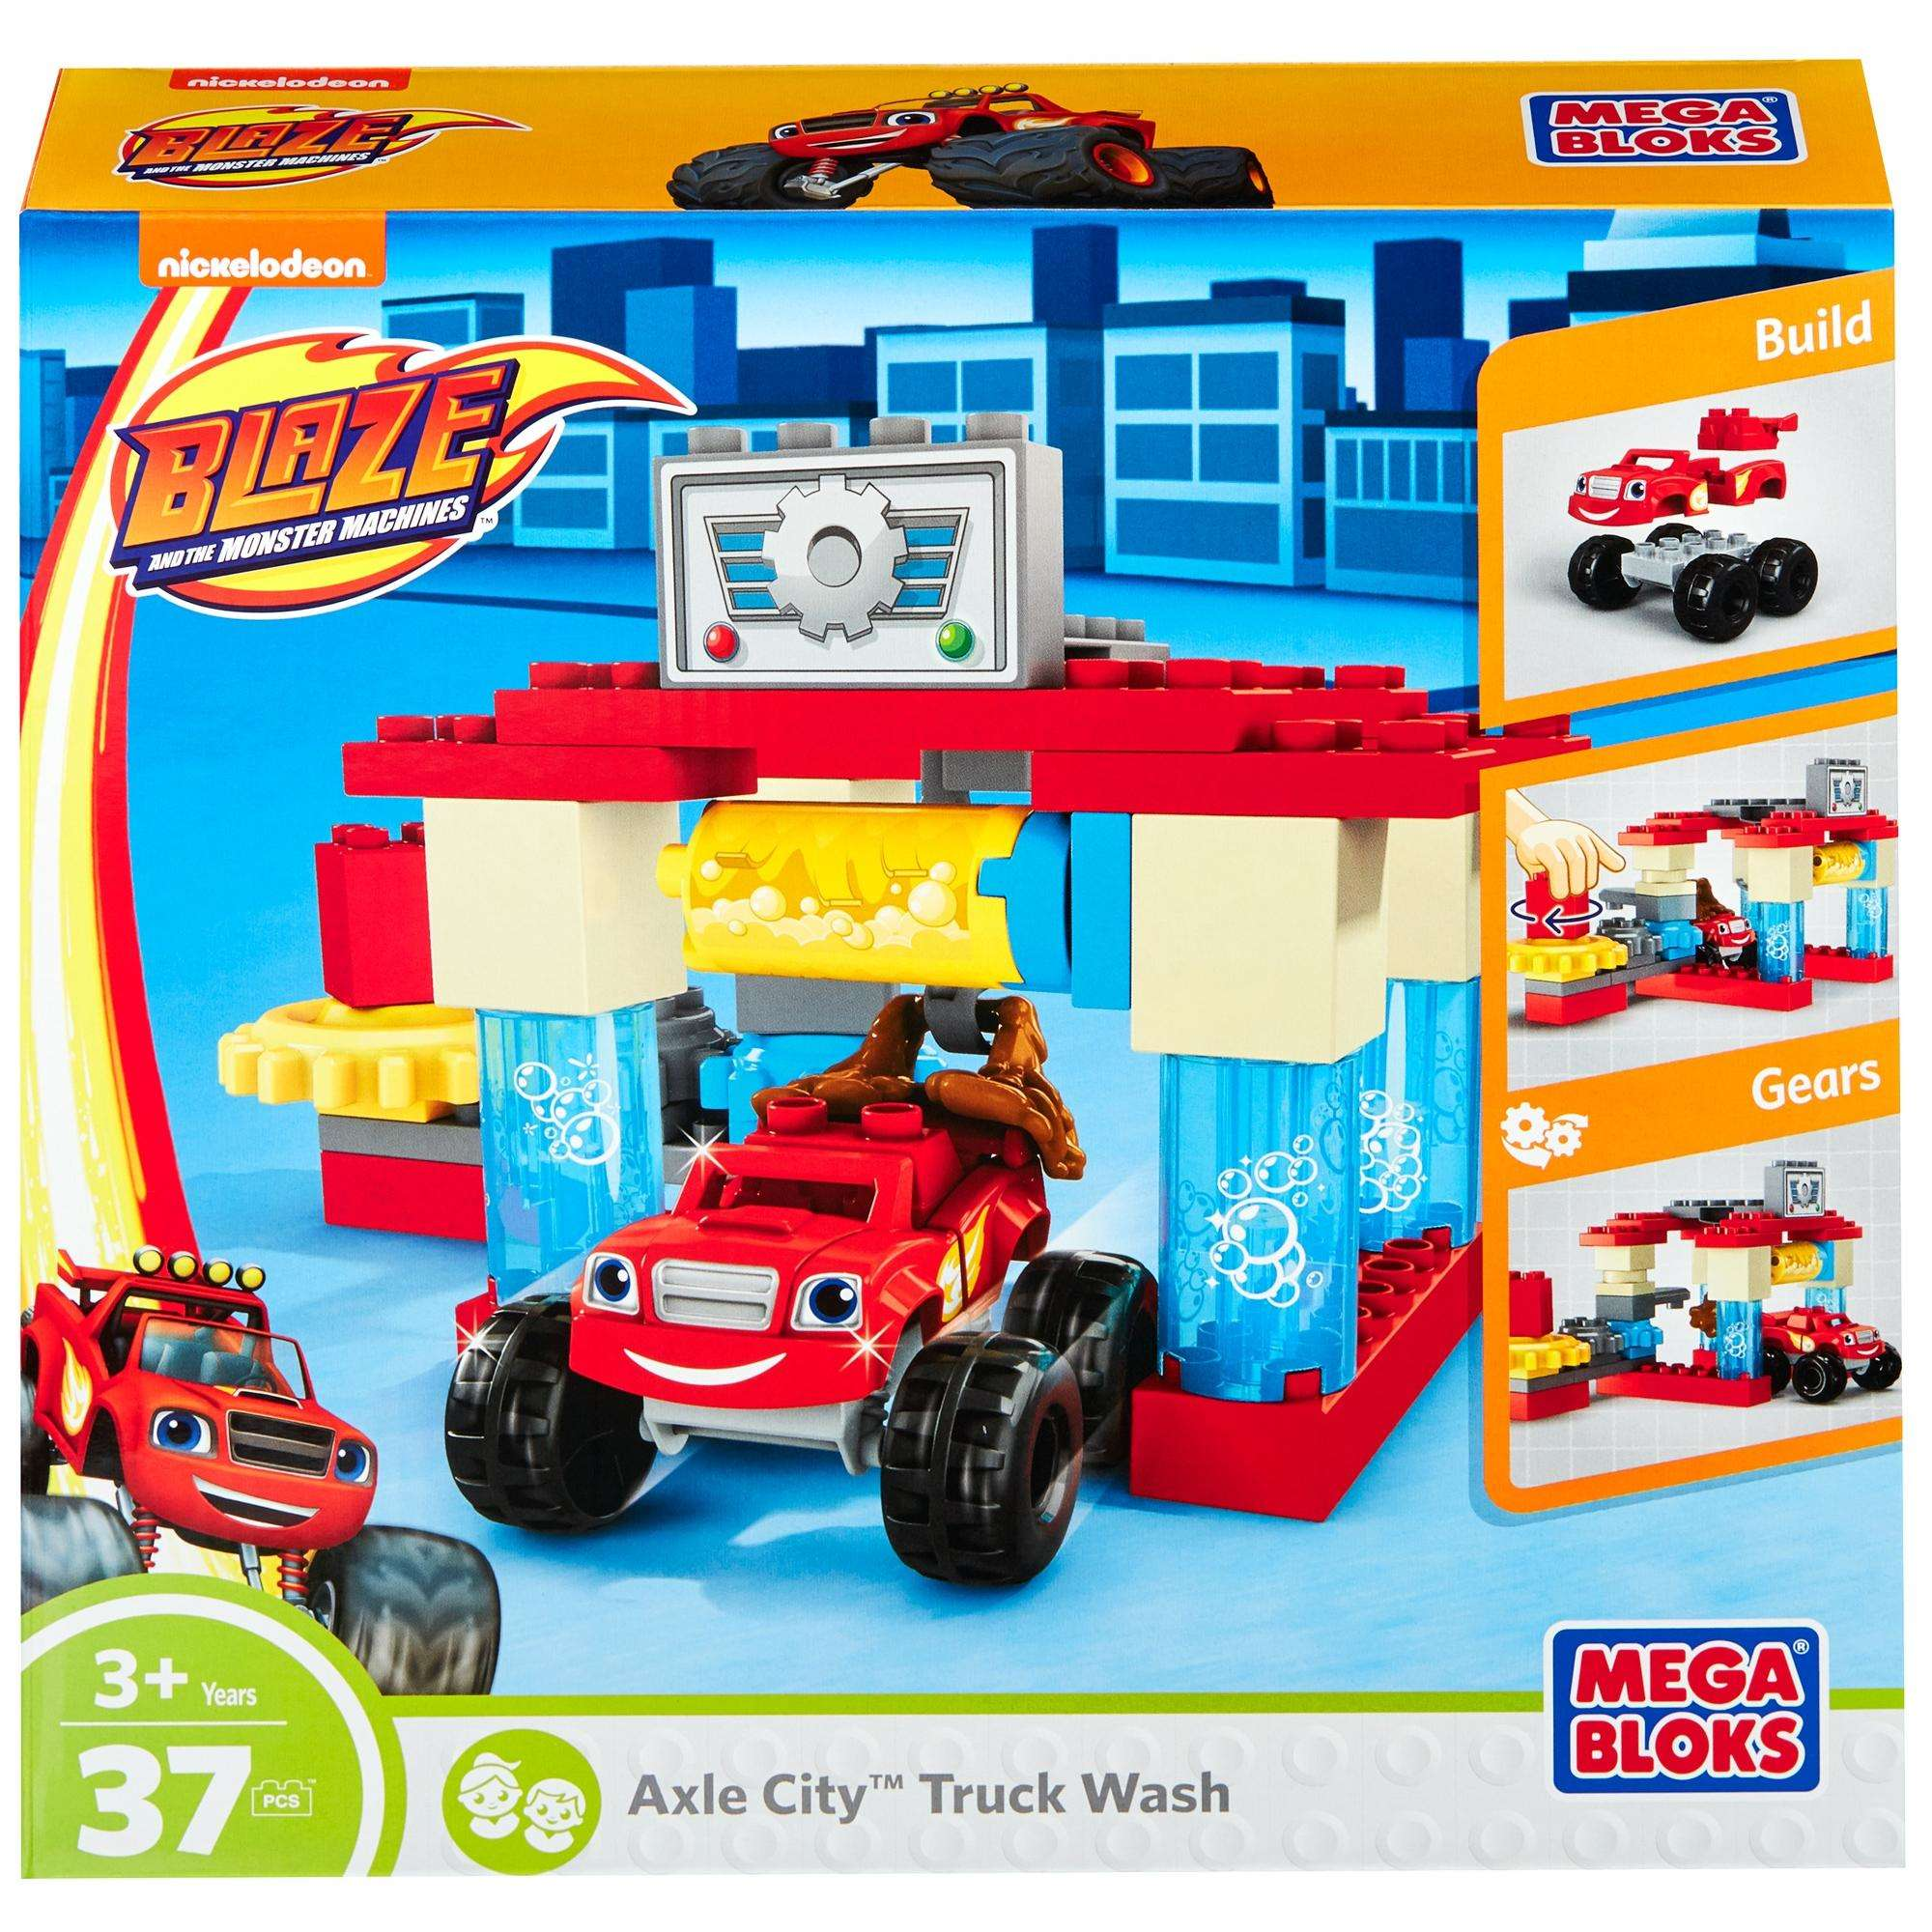 Mega Bloks Nickelodeon Blaze and the Monster Machines Axle City Truck Wash Building Set